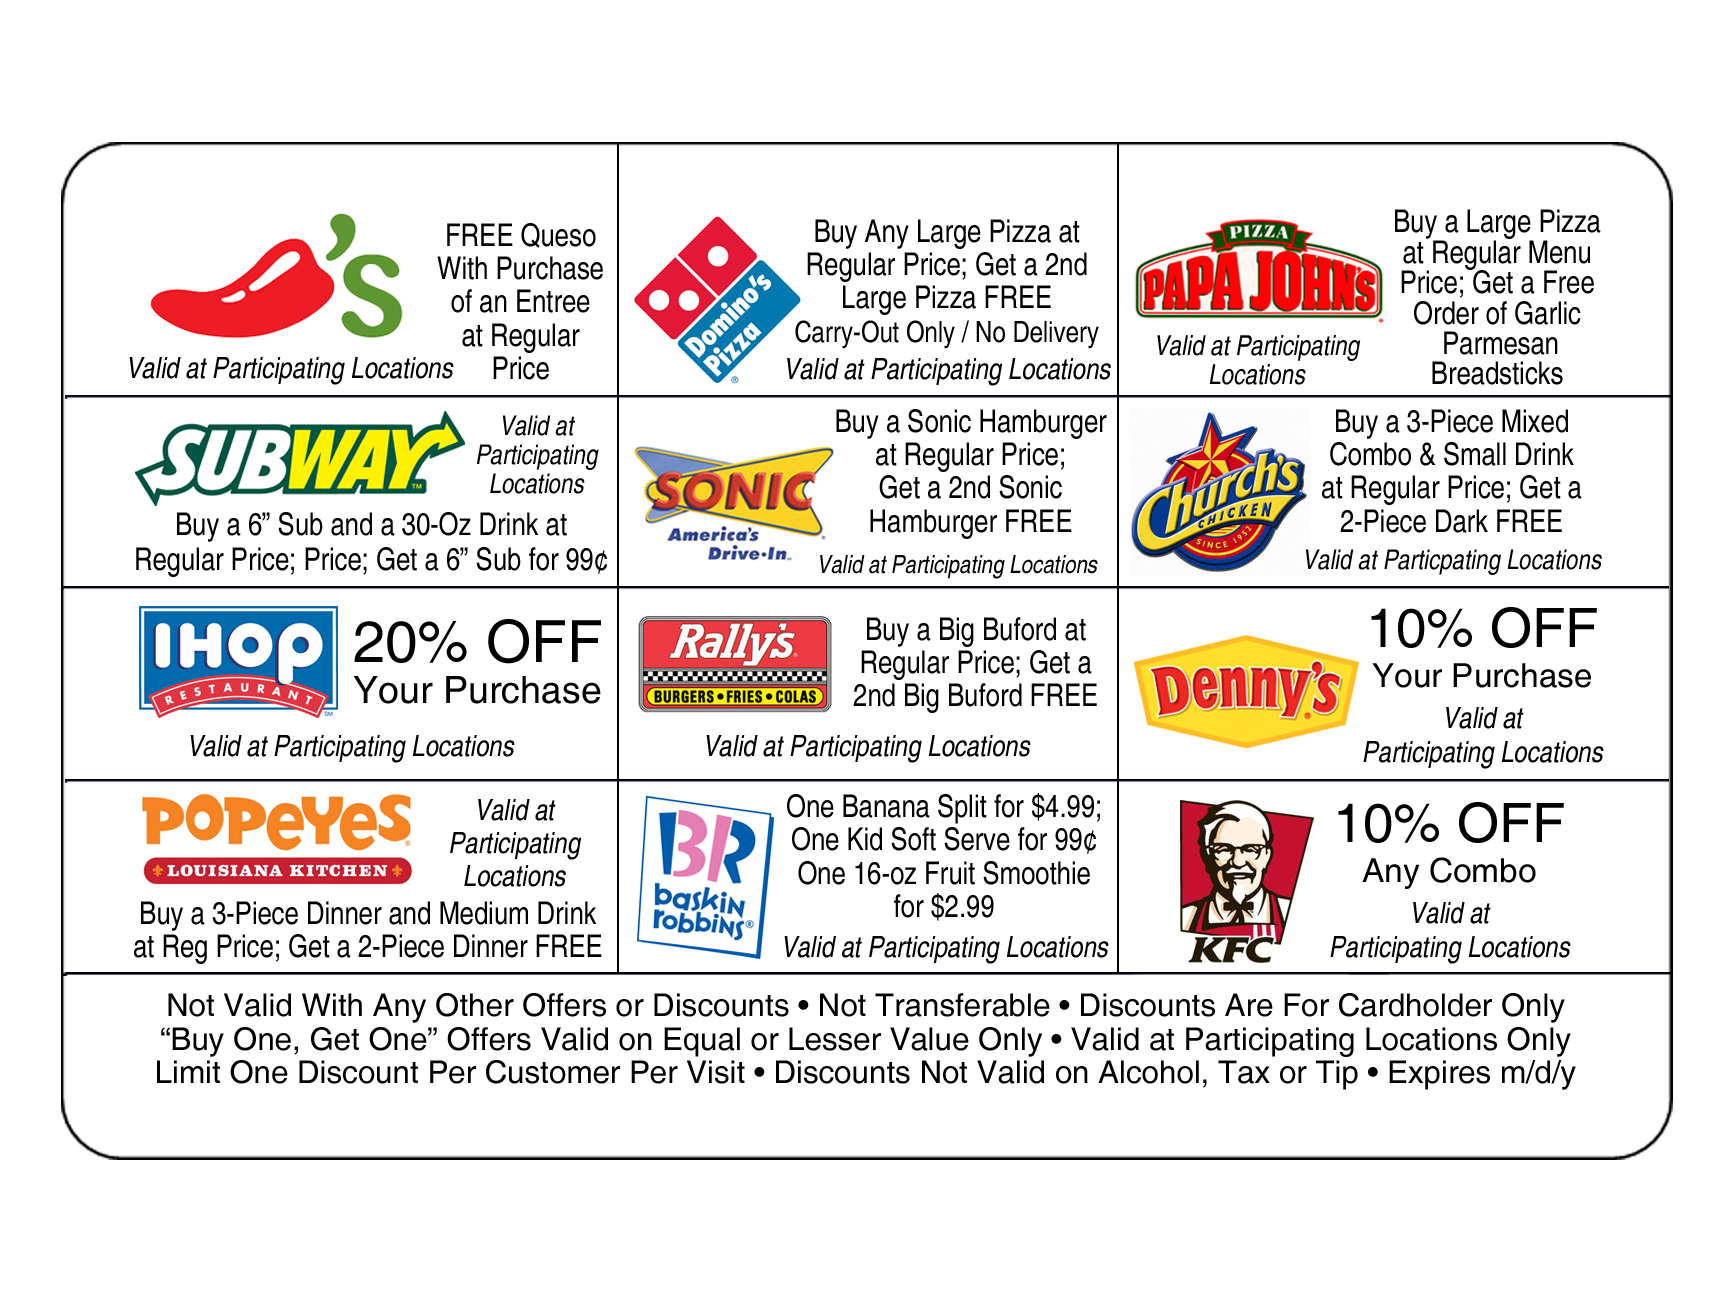 School fundraising discount card offers